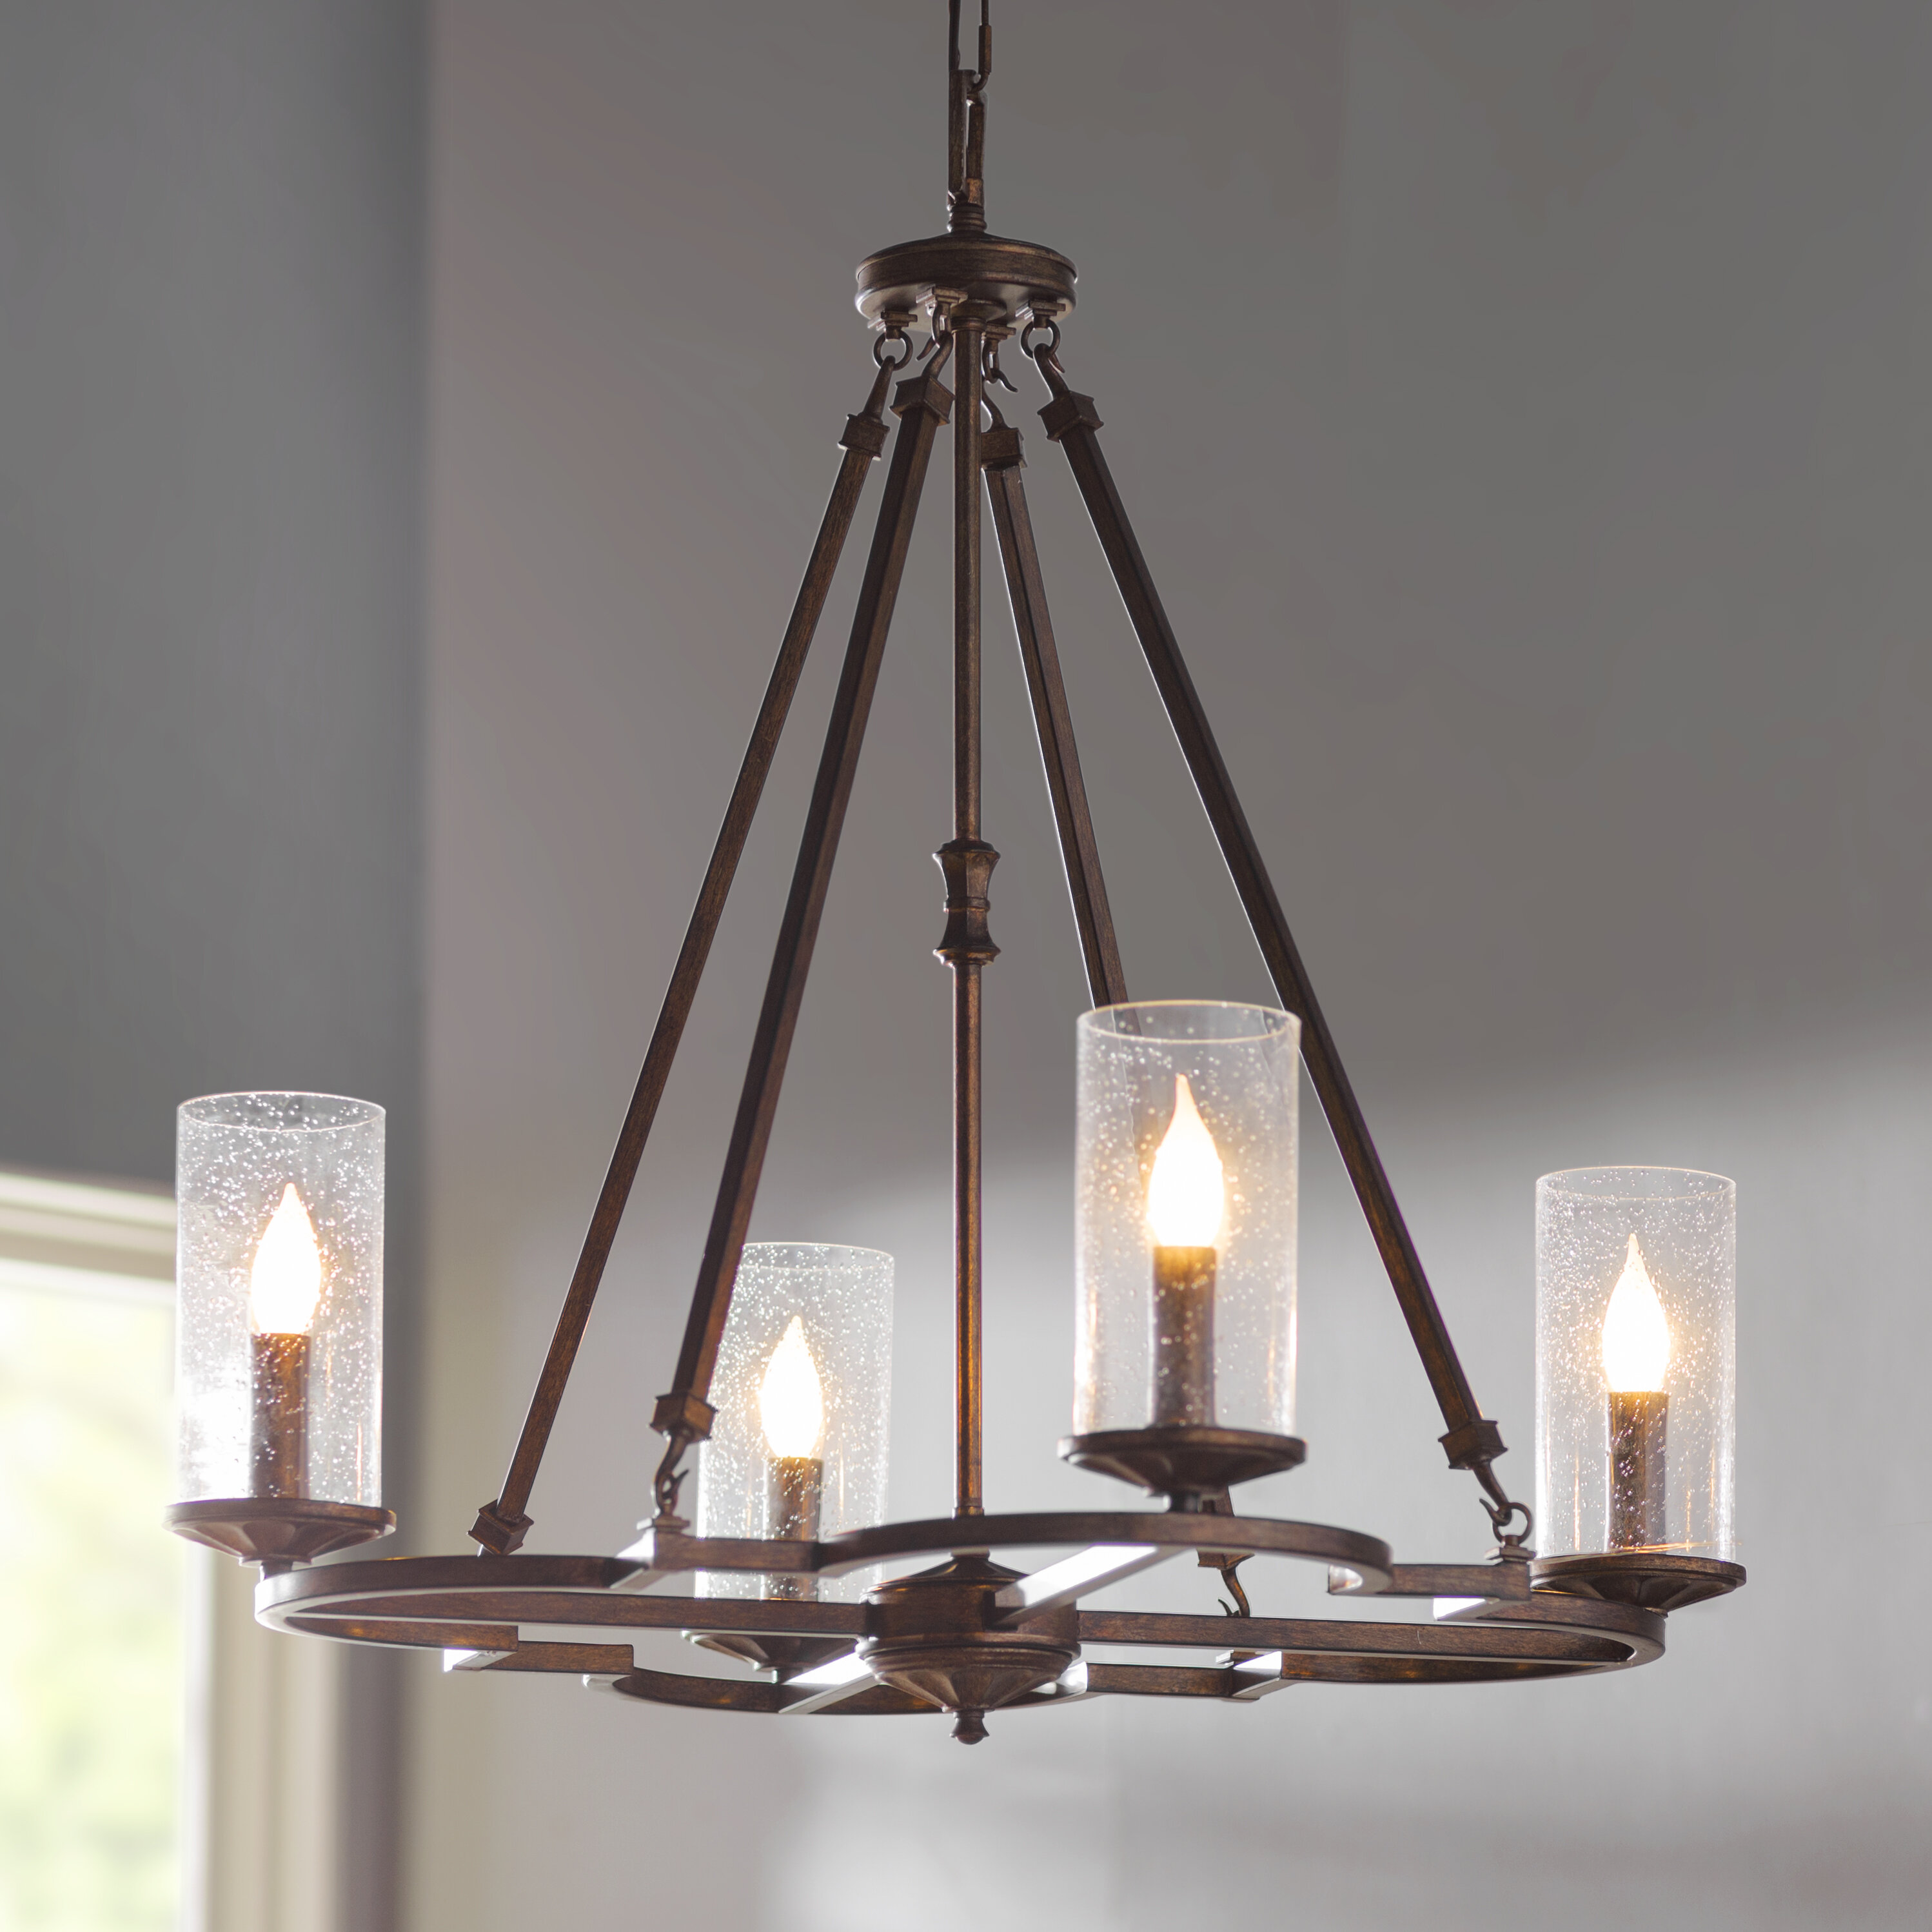 antique scandinavian lighting mg chandelier old empire style french fashioned antiques century